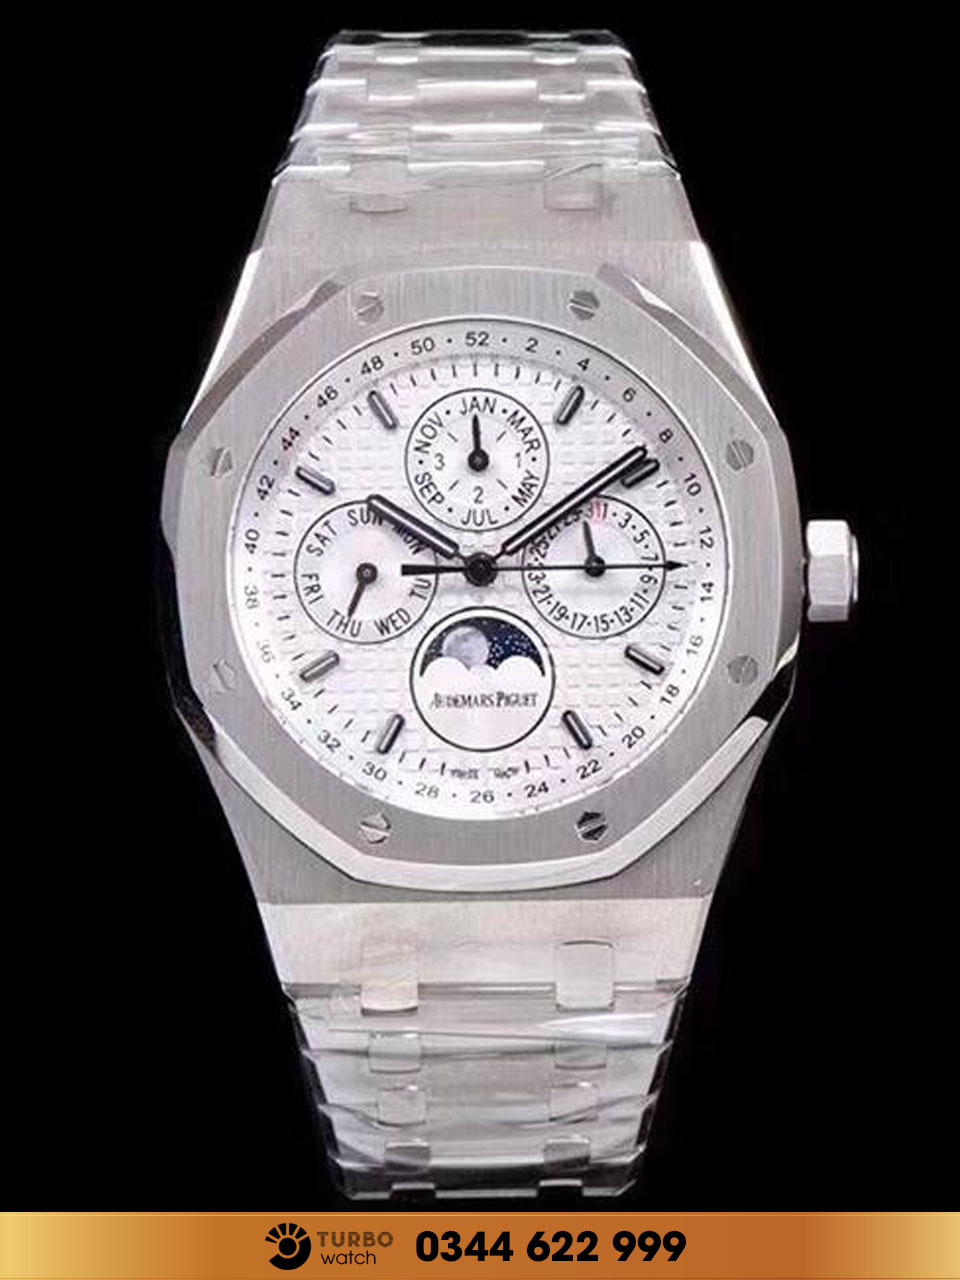 Audemas piguet  Royal Oak Perpetual Calendar Watch fake 1-1 siêu cấp